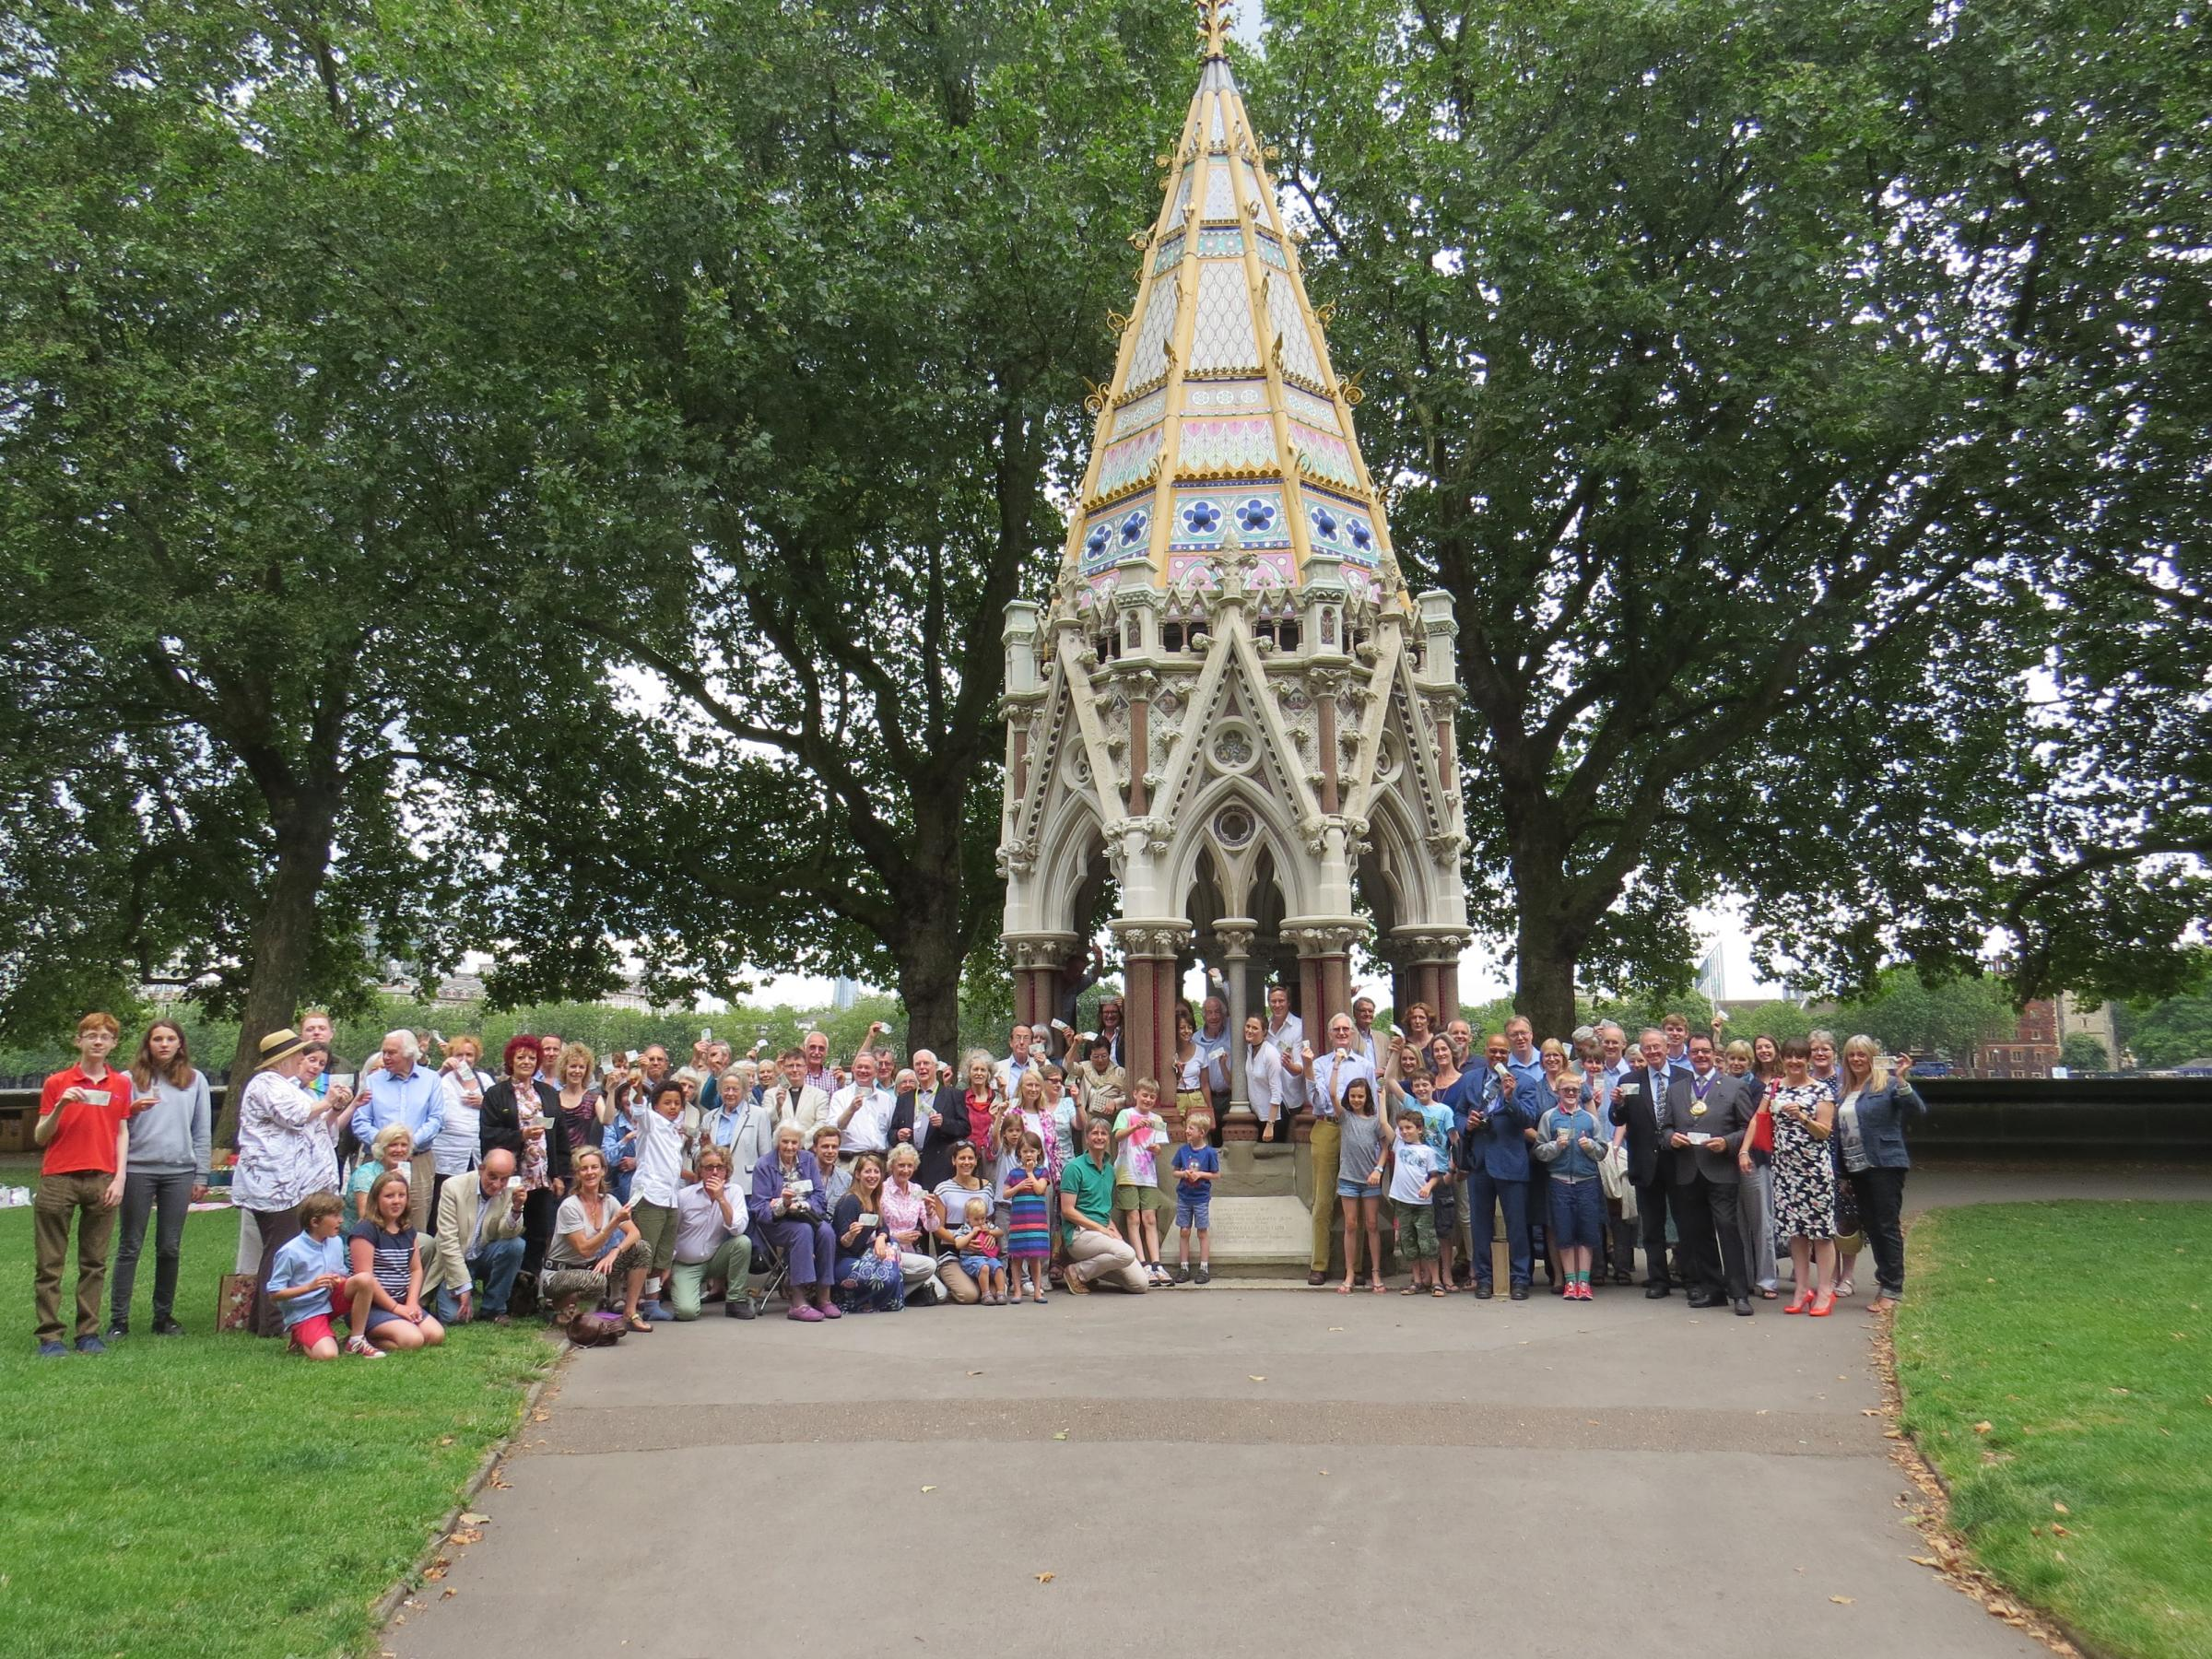 MEMORIAL: Members of the Thomas Fowell Buxton Society pose with Buxton family members around Buxton Fountain in Victoria Park (Photo by Joe Buxton)